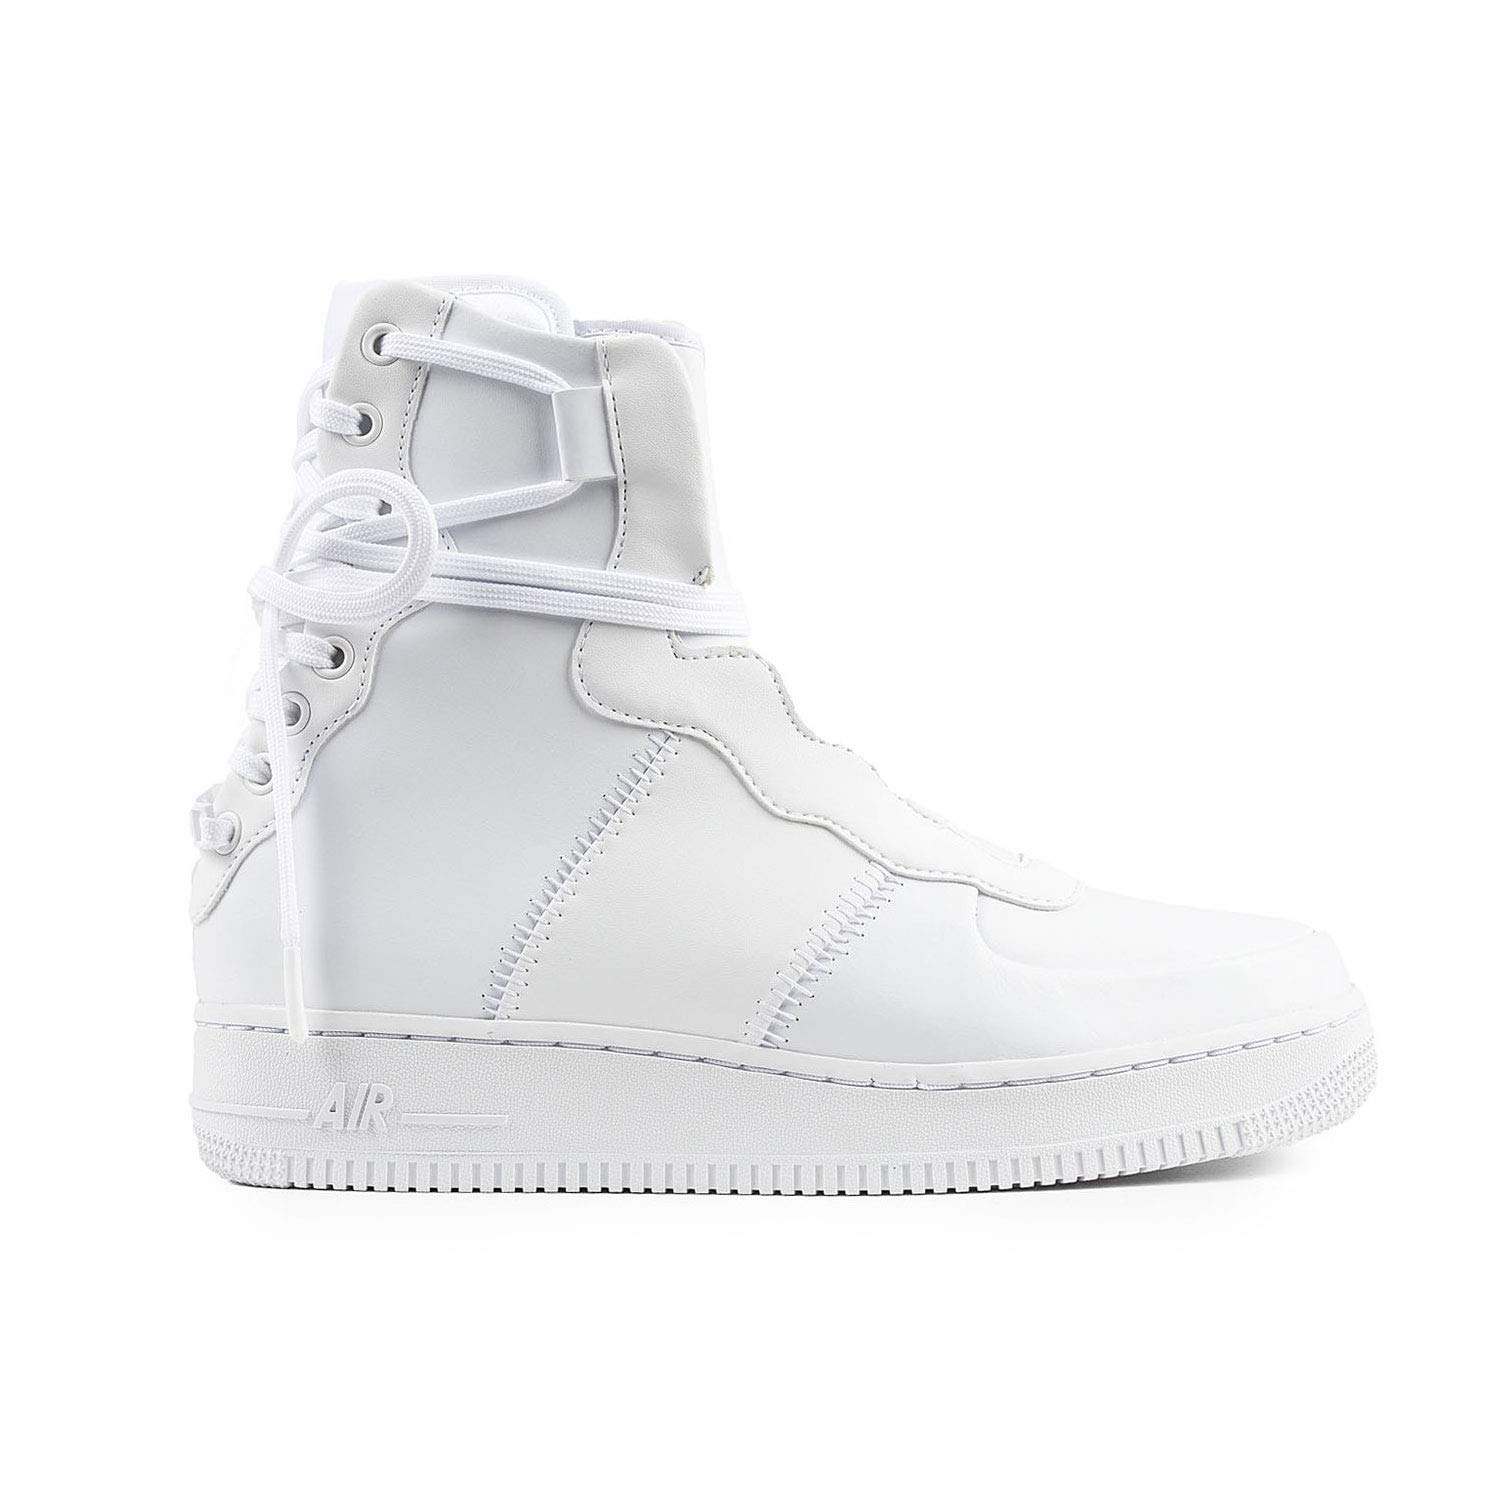 Nike Women's Air Force 1 Rebel XX PRM White AO1525-101 (Size: 7.5) by Nike